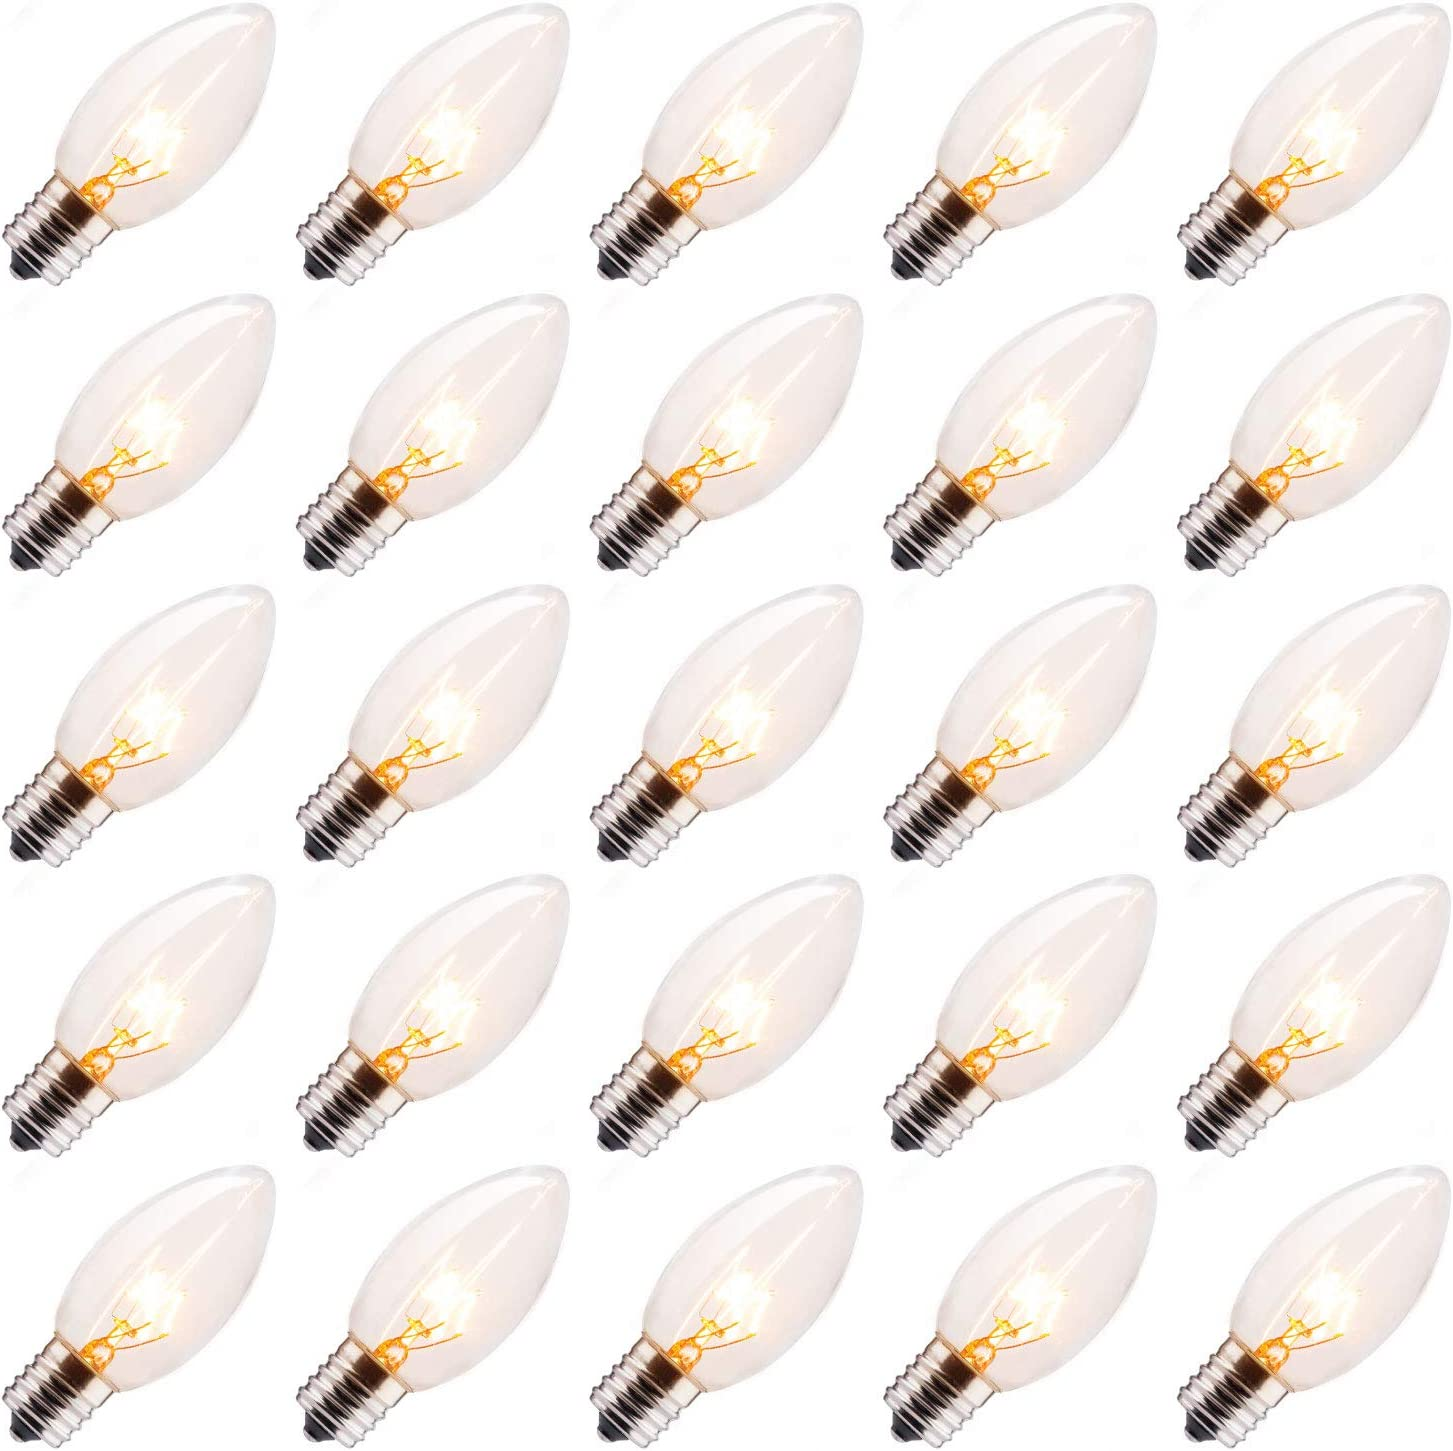 25 Pack Quantity limited C9 Incandescent Bulb Light Christmas Tampa Mall Bul Replacement